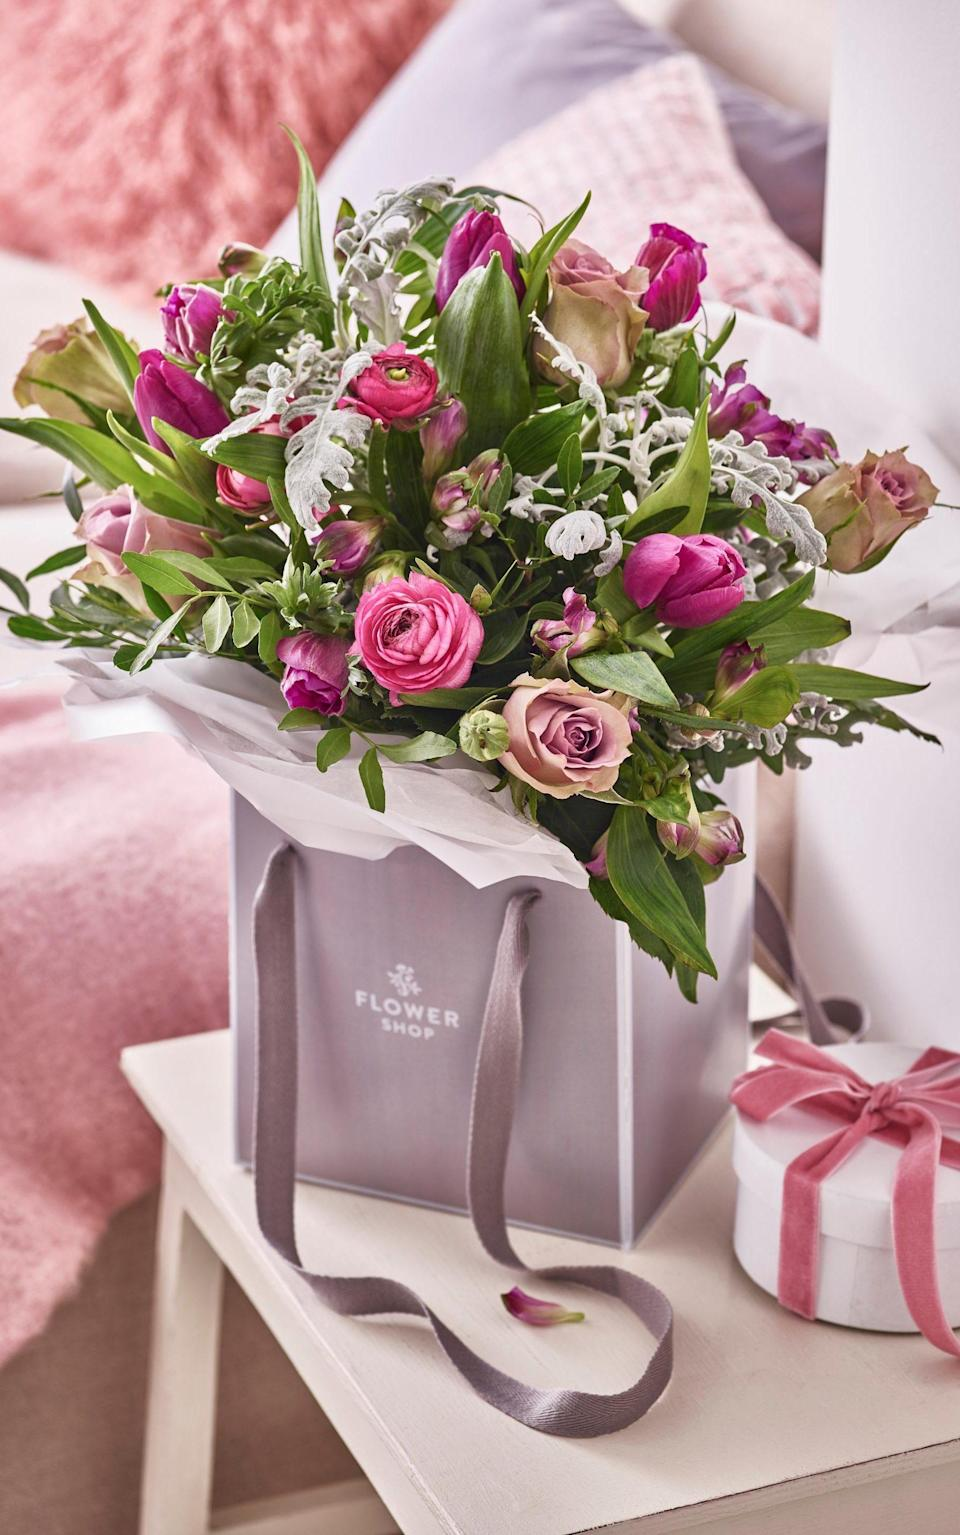 Valentines Seasonal Gift Bag (£35, Marks & Spencer)